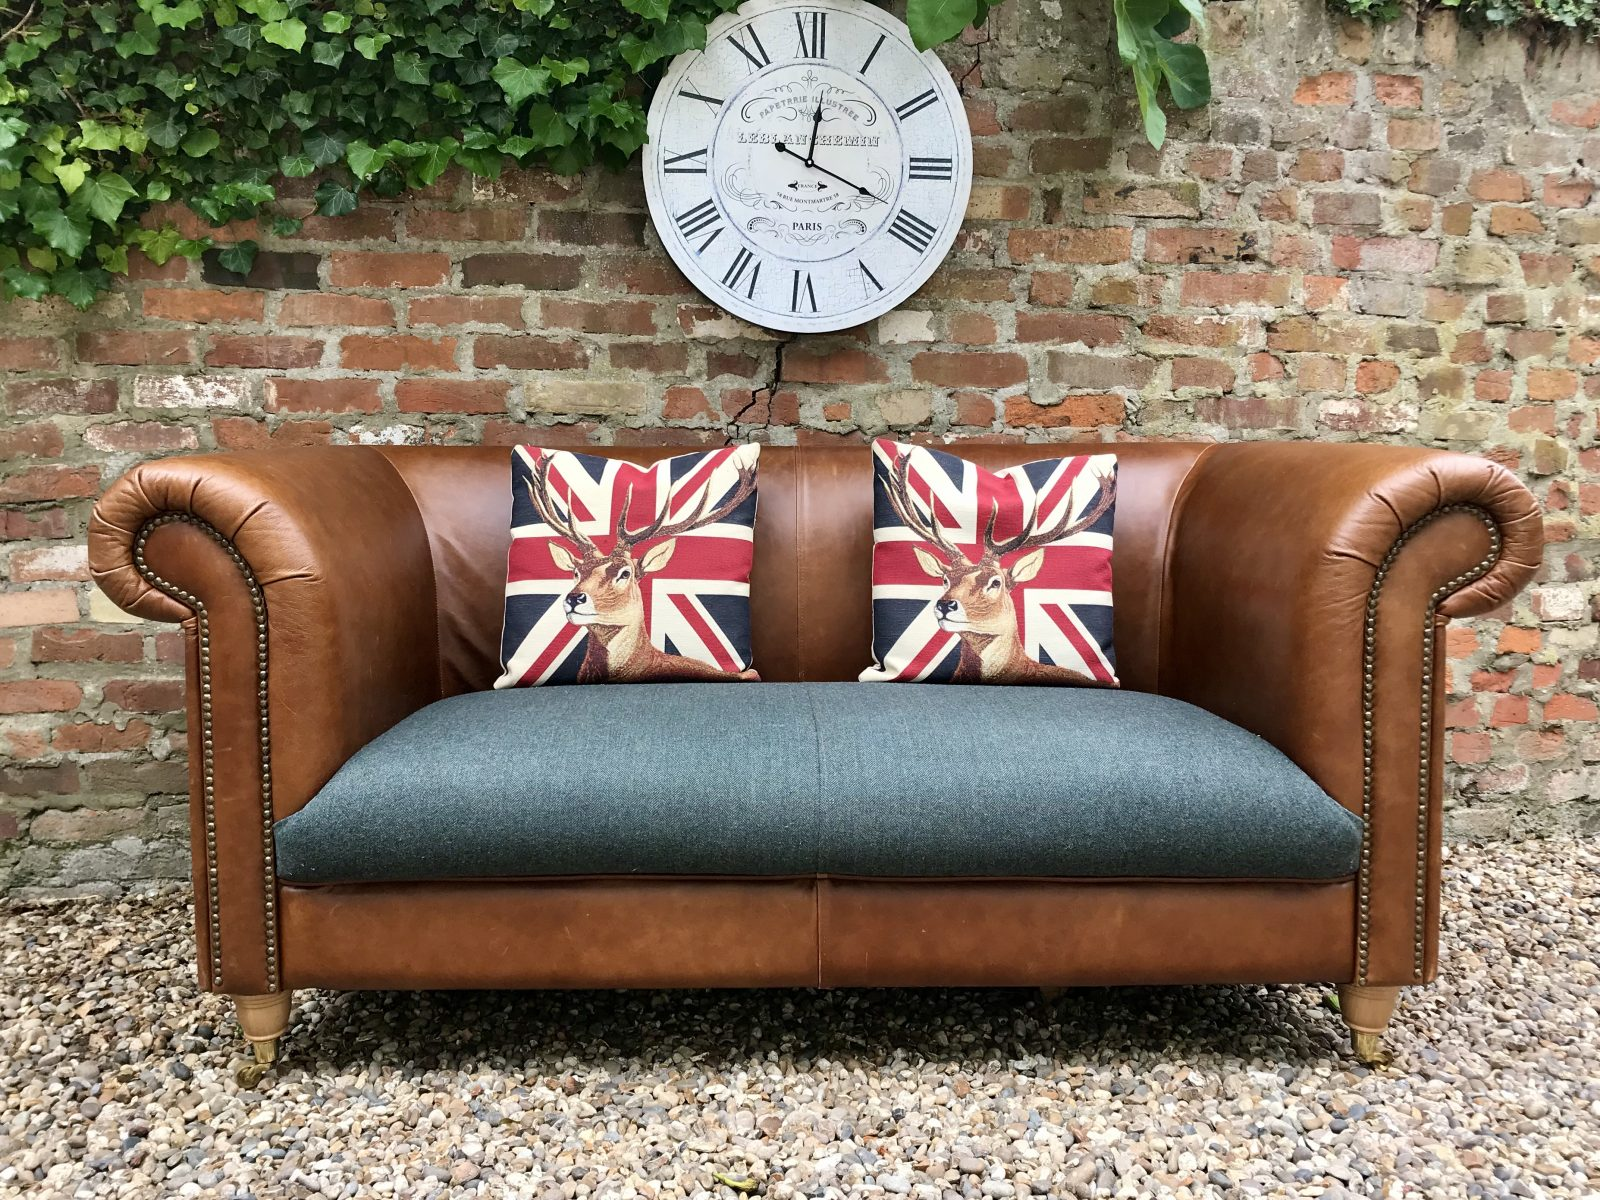 Stunning Tan Leather And Tweed Chesterfield Sofa.